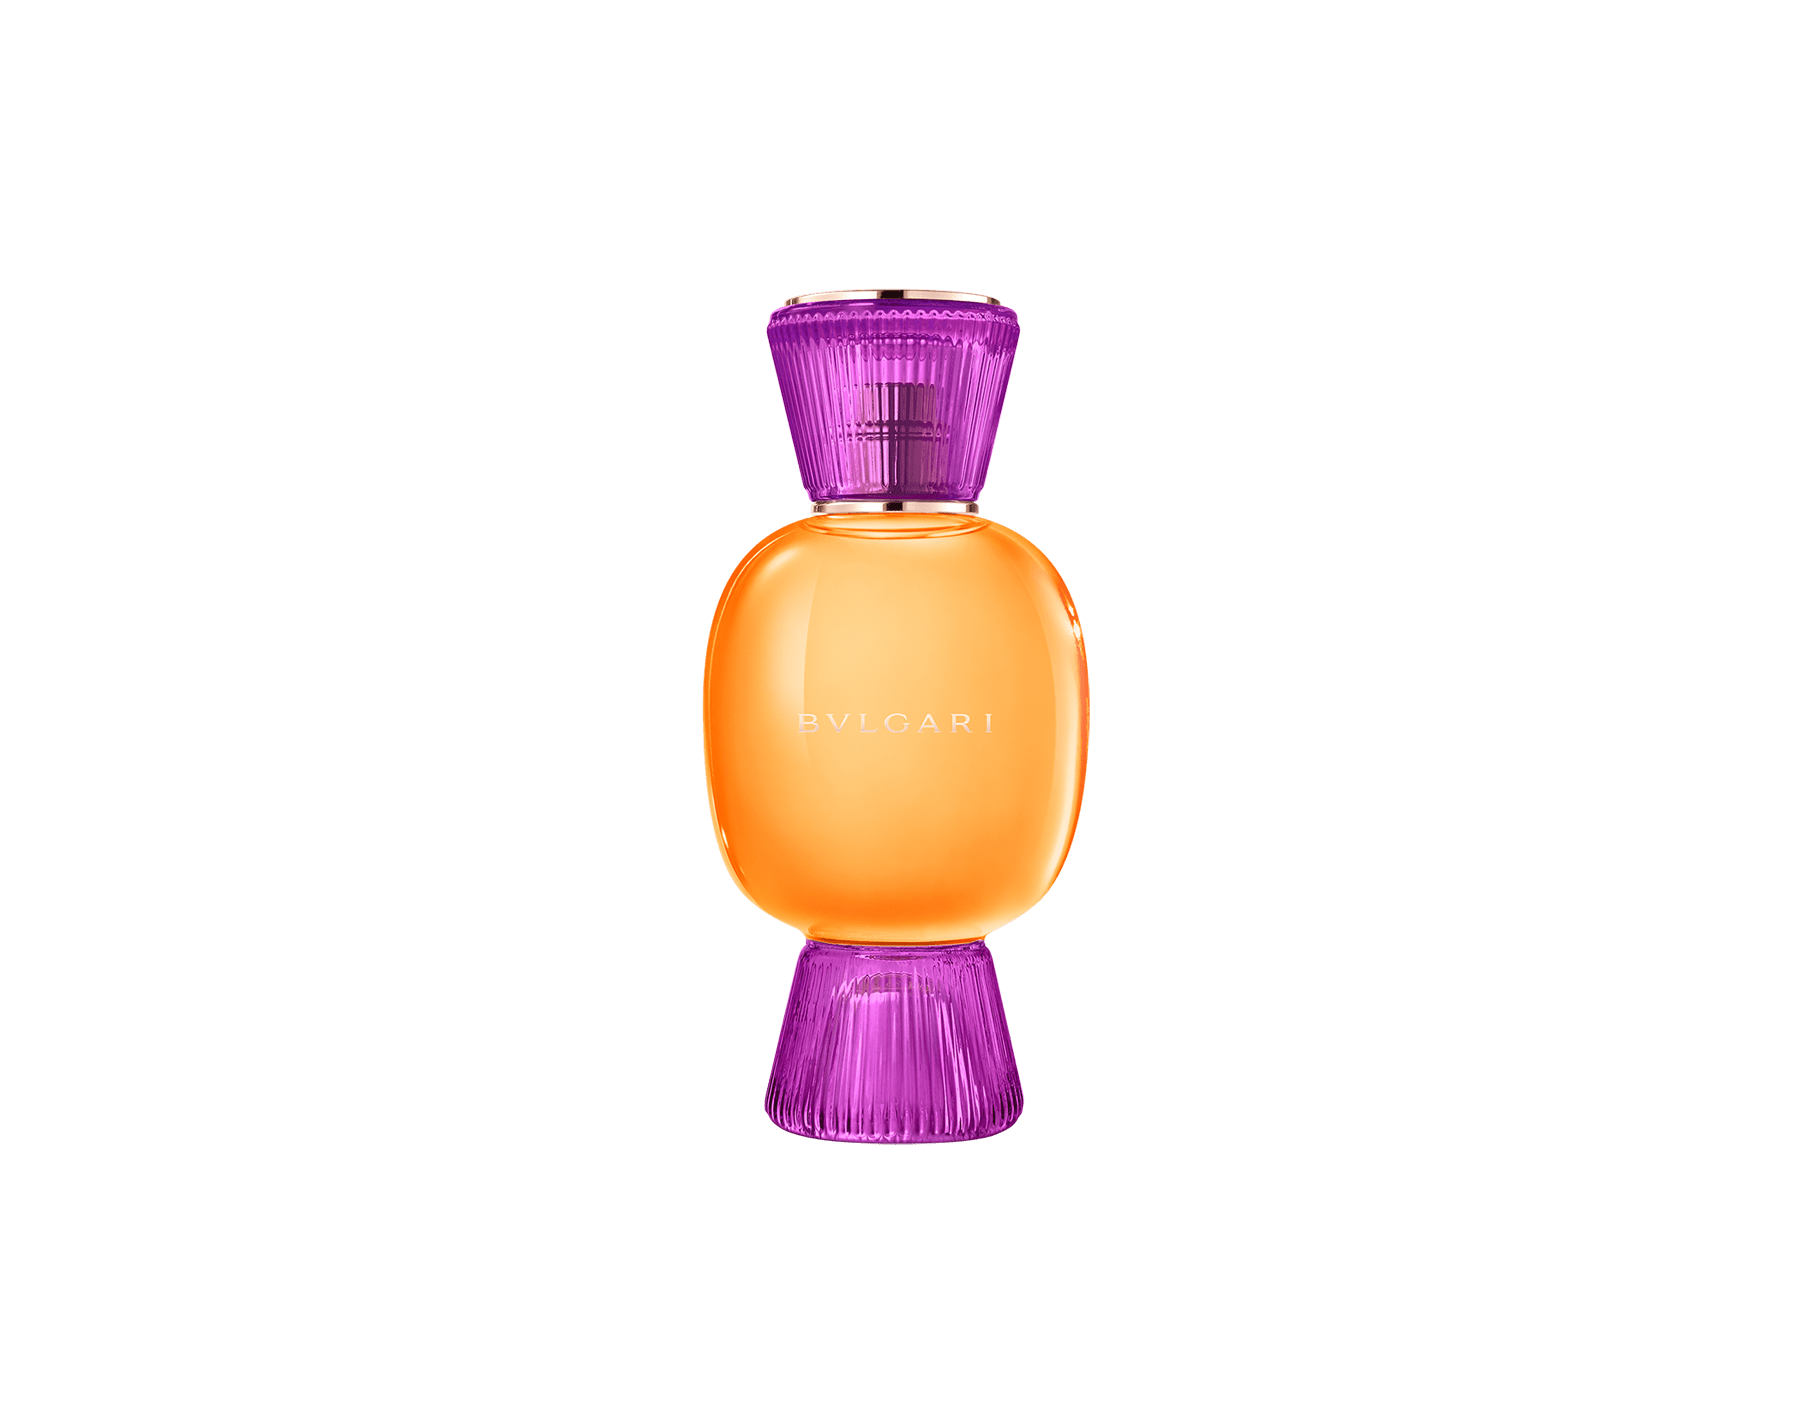 An exclusive perfume set, as bold and unique as you. The liquorous floriental Rock'n'Rome Allegra Eau de Parfum blends with the addictive aroma of the Magnifying Vanilla Essence, creating an irresistible personalised women's perfume.  Perfume-Set-Rock-n-Rome-Eau-de-Parfum-and-Vanilla-Magnifying image 2